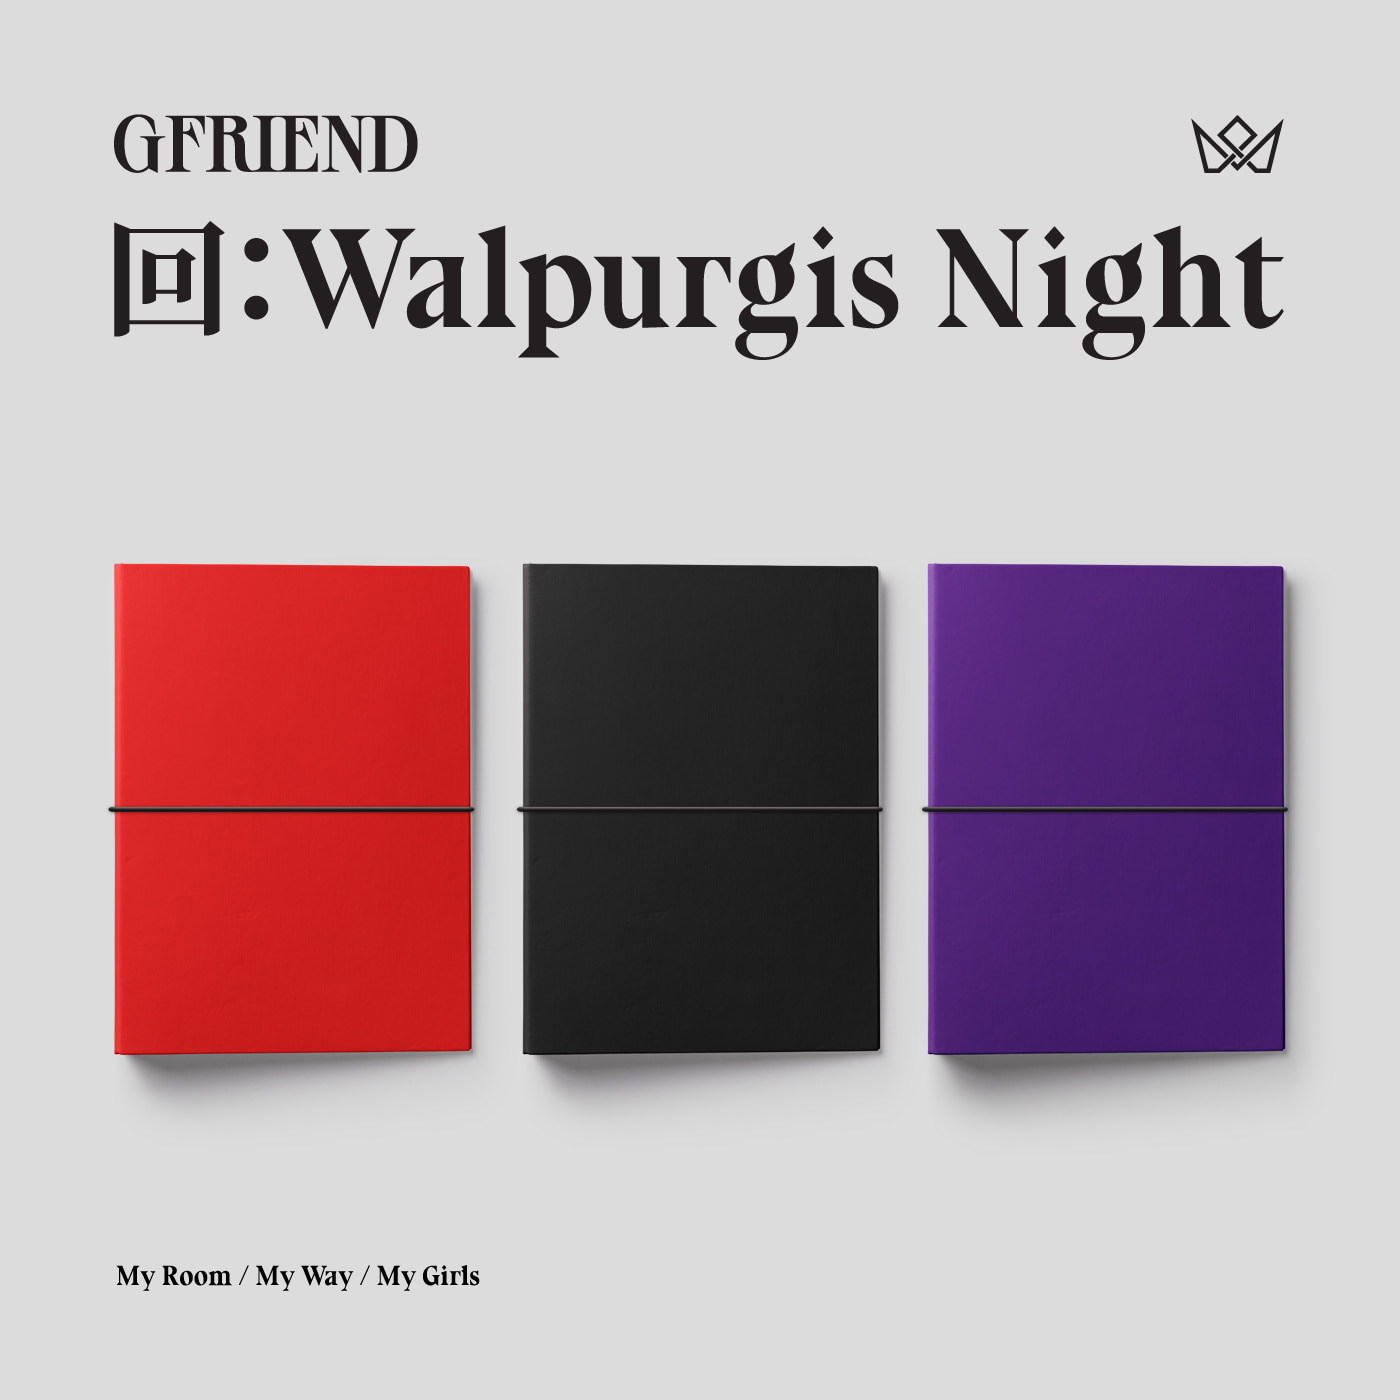 [PRE-ORDER] GFRIEND - Album [回:Walpurgis Night] (My Girs+My Room+My Way Ver.)케이팝스토어(kpop store)